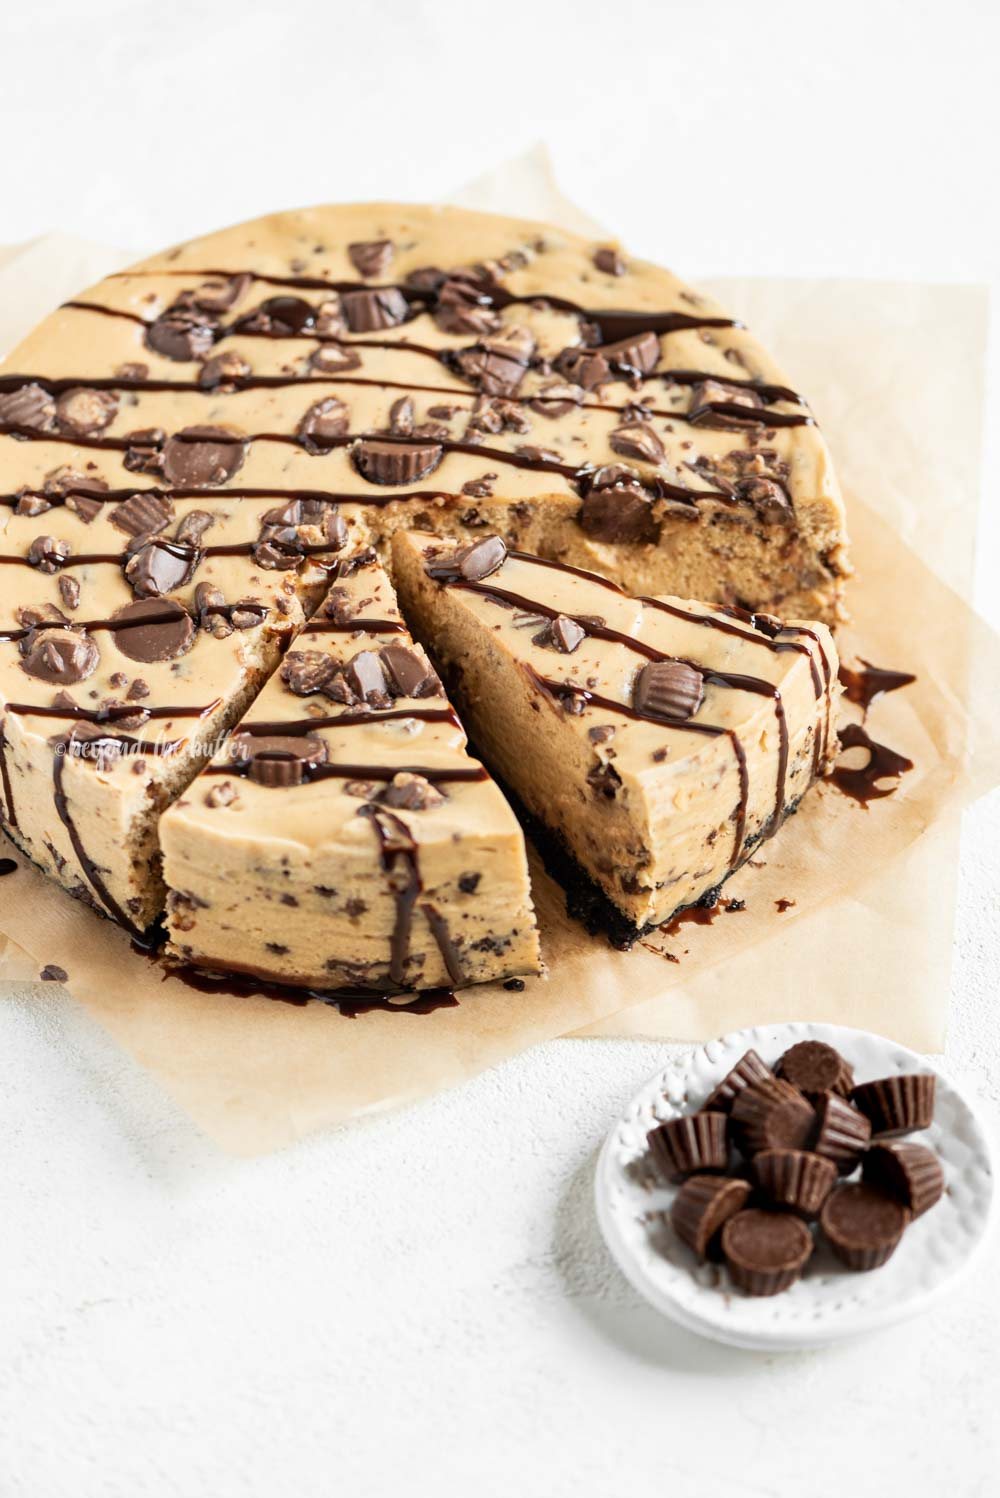 Angled image of sliced Reese's Peanut Butter Cup Cheesecake drizzled with chocolate | All Images © Beyond the Butter, LLC